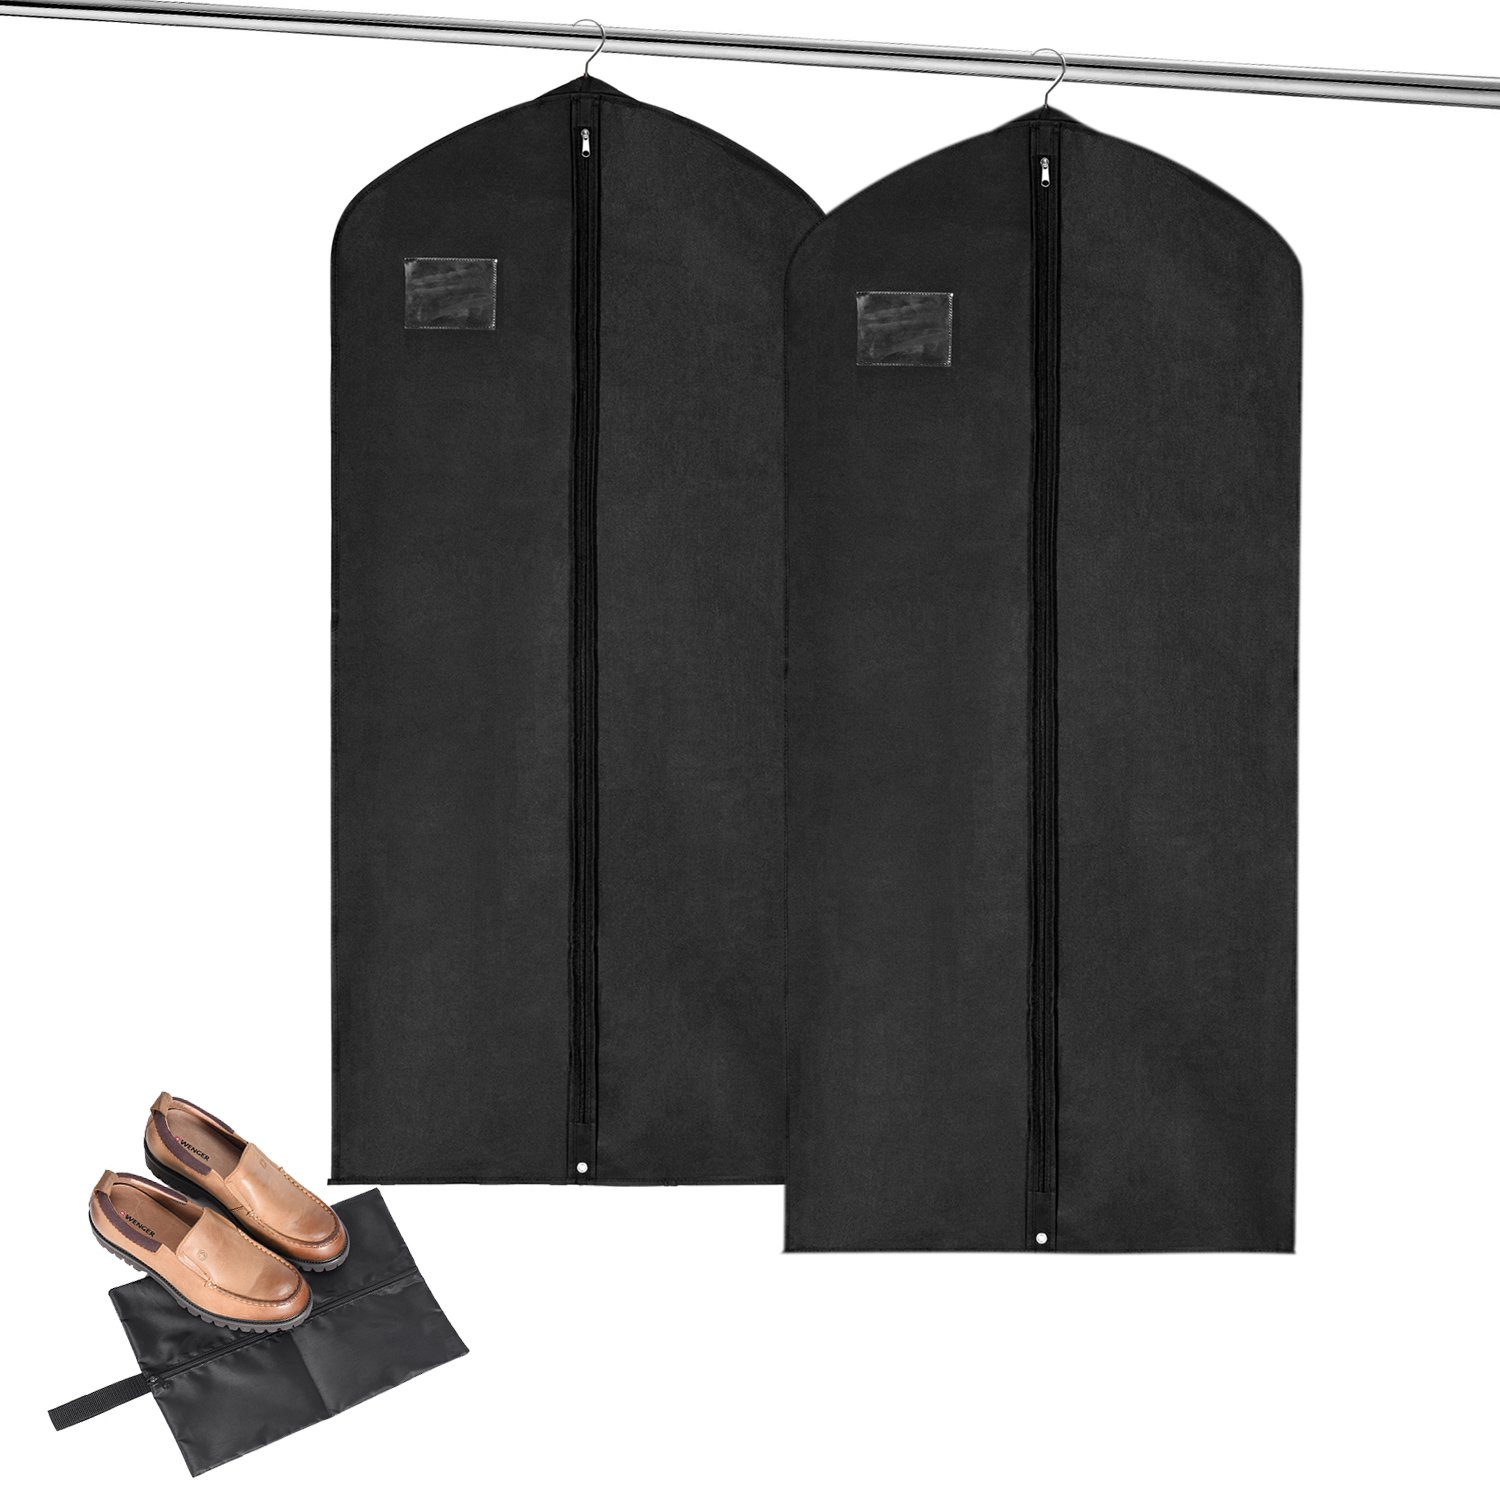 MaidMAX Set of 2 Garment Bags with Full Length Zipper and a Bonus Shoe Bag, Black, 54 Inches Long 903022-1